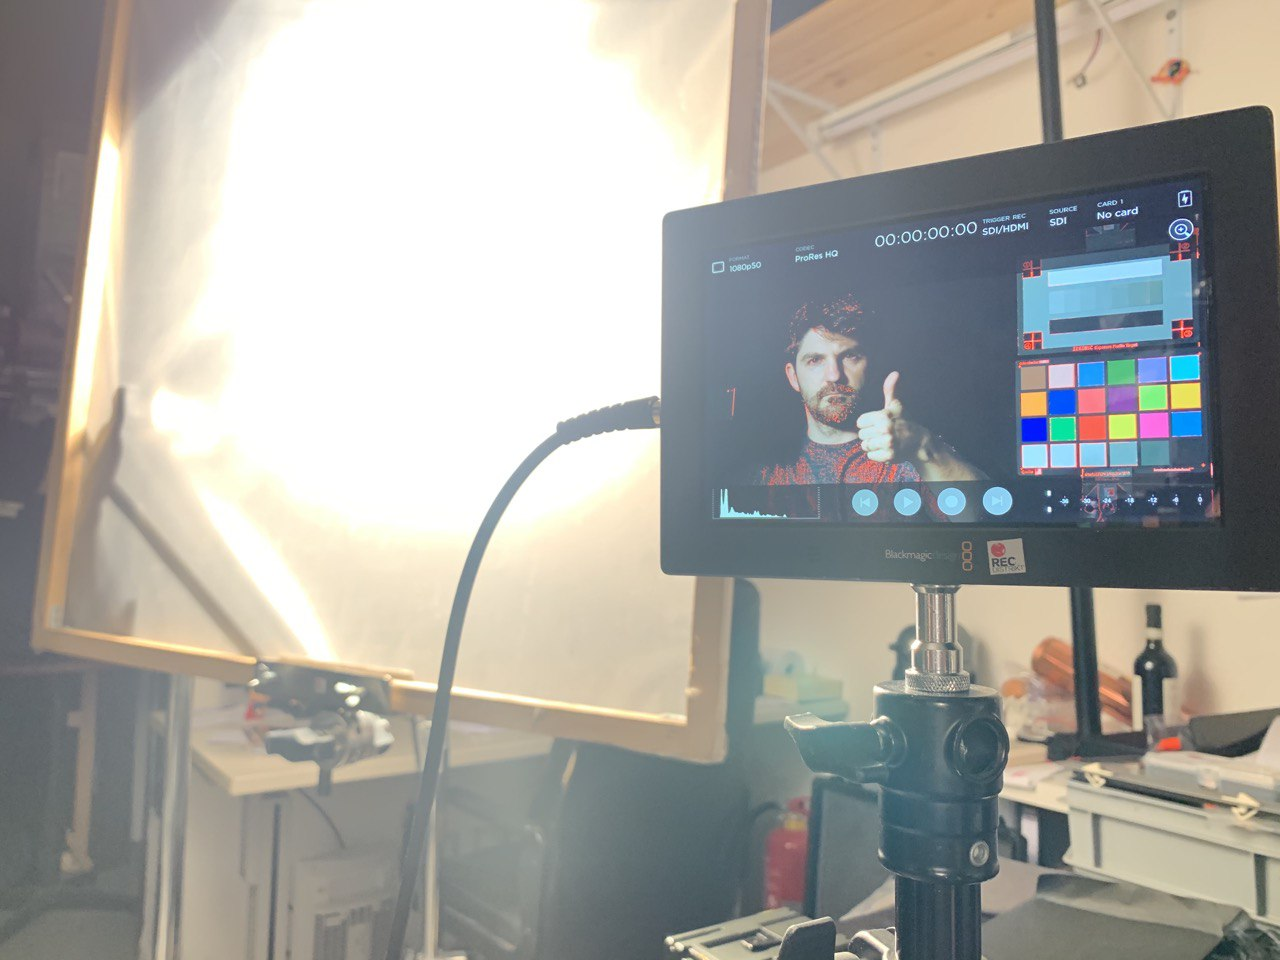 Backstage light and monitoring